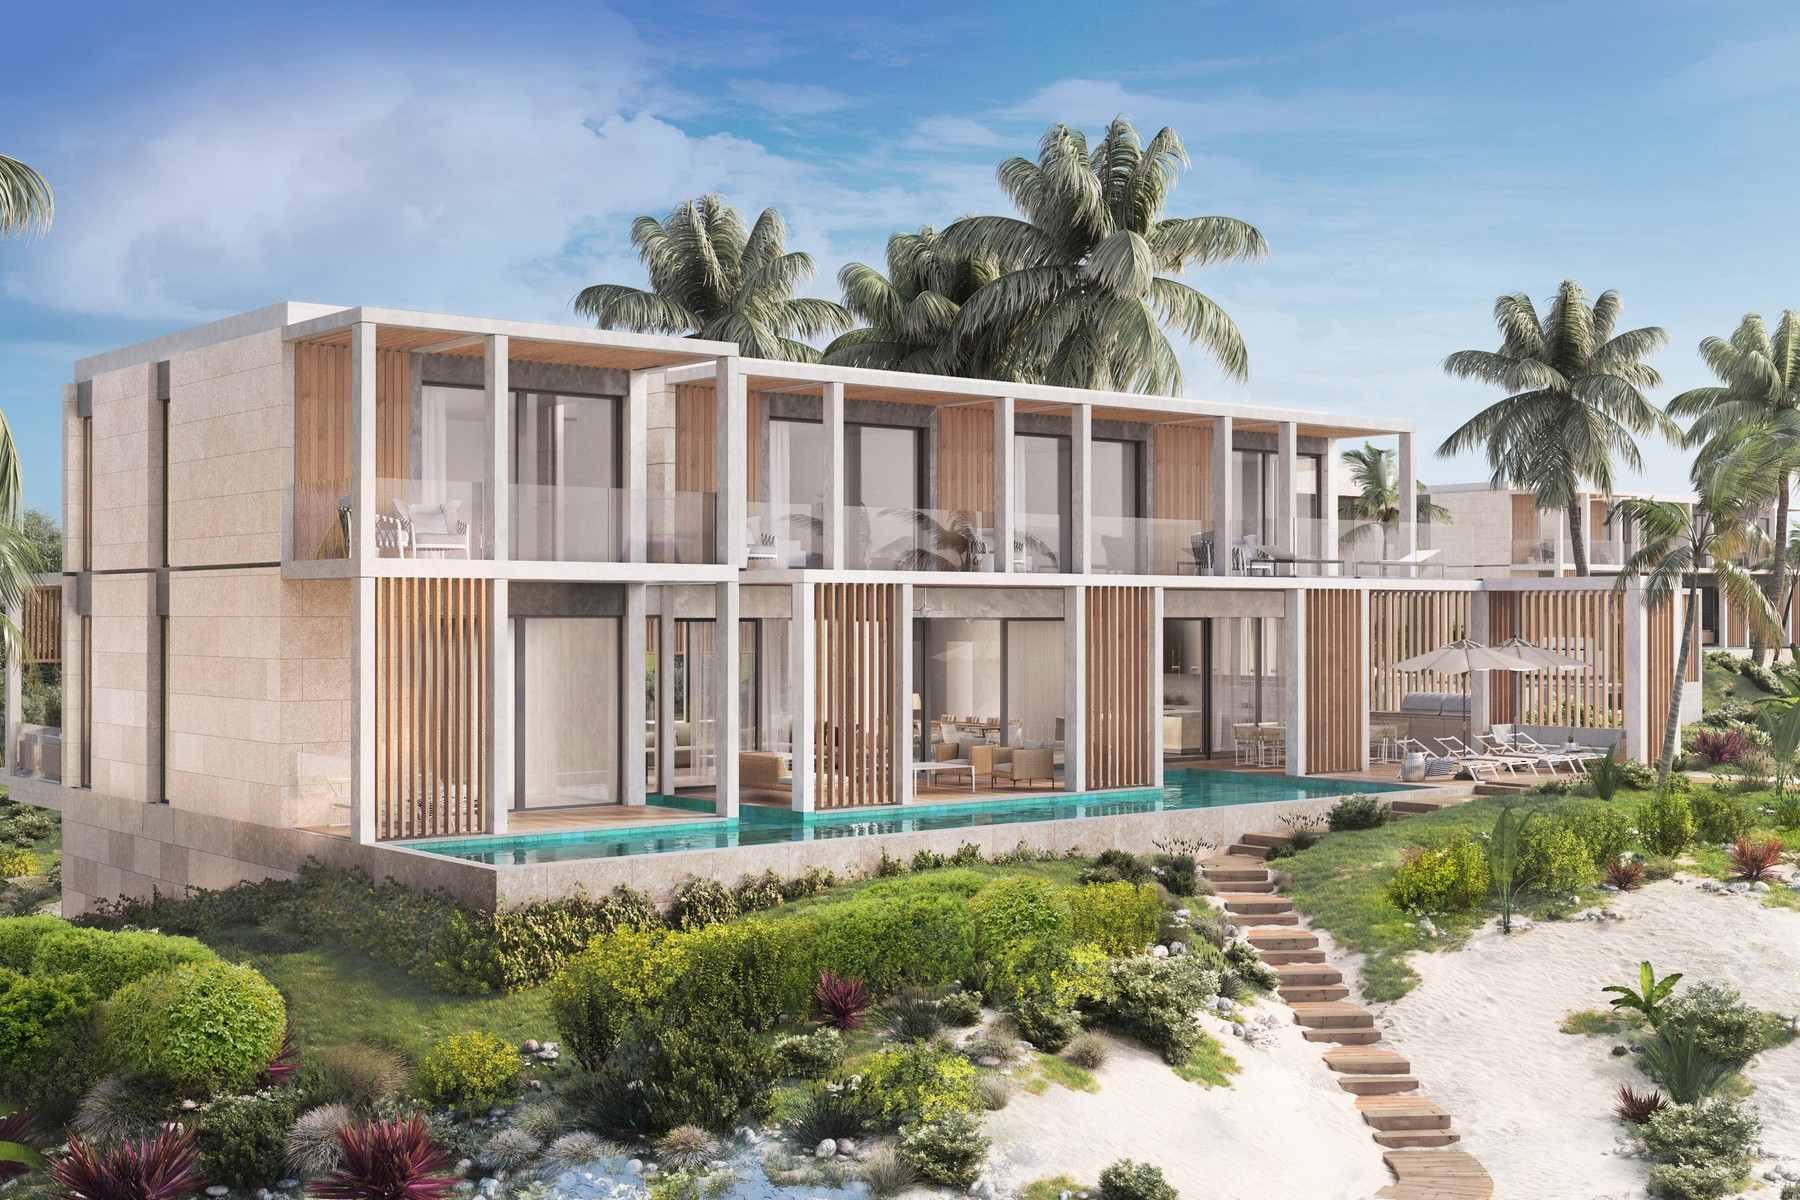 Single Family Homes for Sale at SOUTH BANK - THE OCEAN ESTATE I - DUNE VILLA South Bank, Long Bay, Providenciales Turks And Caicos Islands